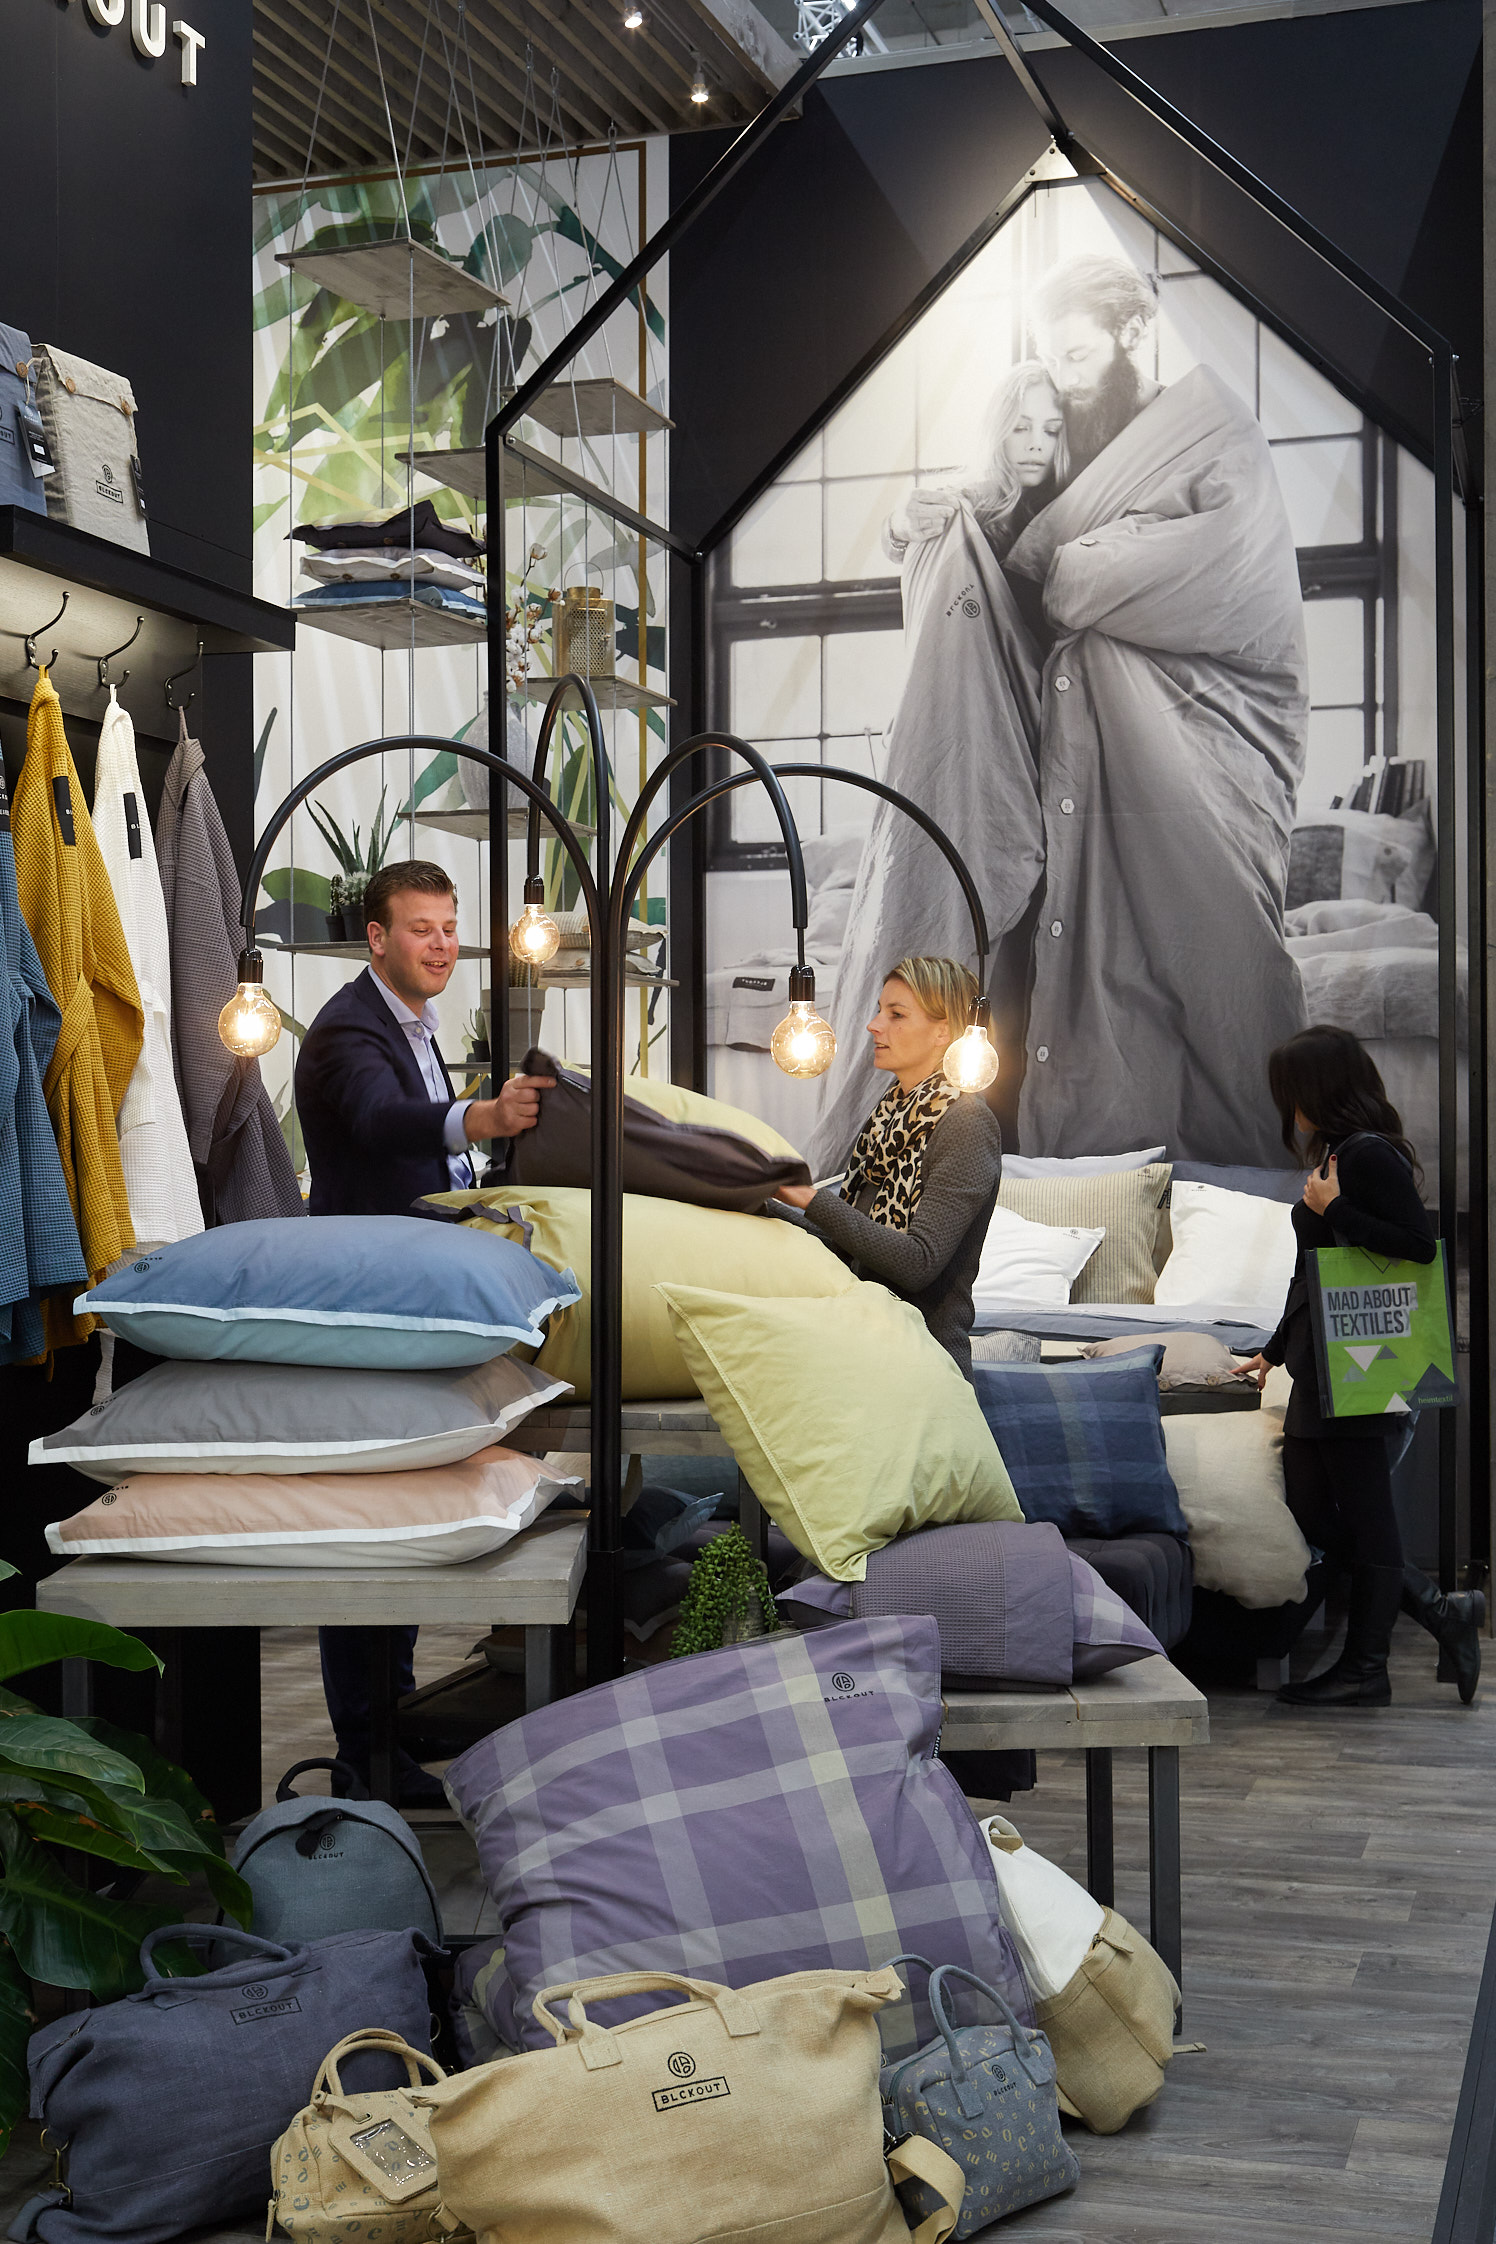 Bed & Bath Fashion (Brands) / Ekkelboom B.V.